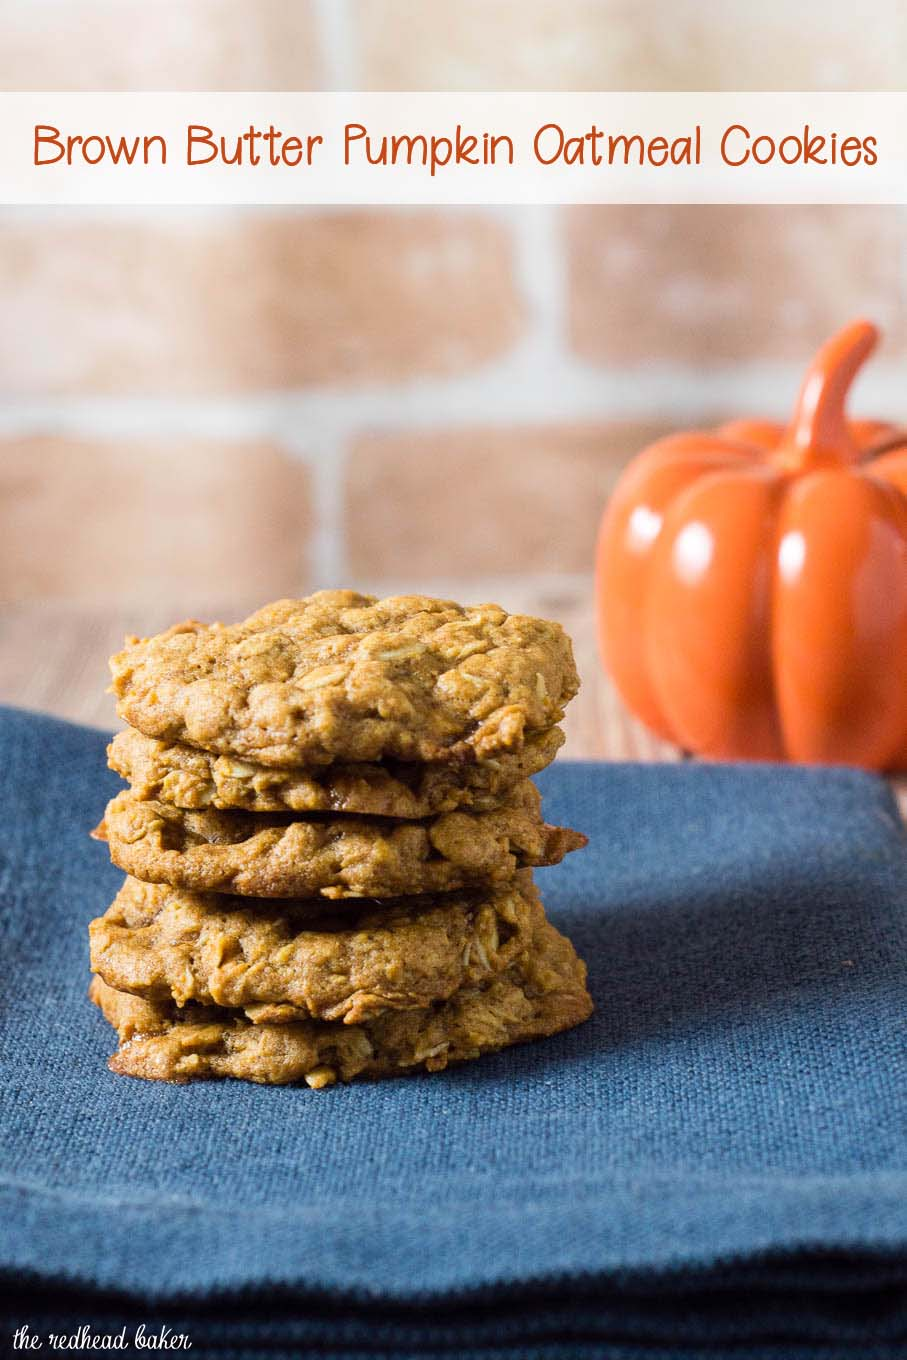 These chewy pumpkin oatmeal cookies are flavored with spices and nutty browned butter, and are loaded with caramel chips. #PumpkinWeek